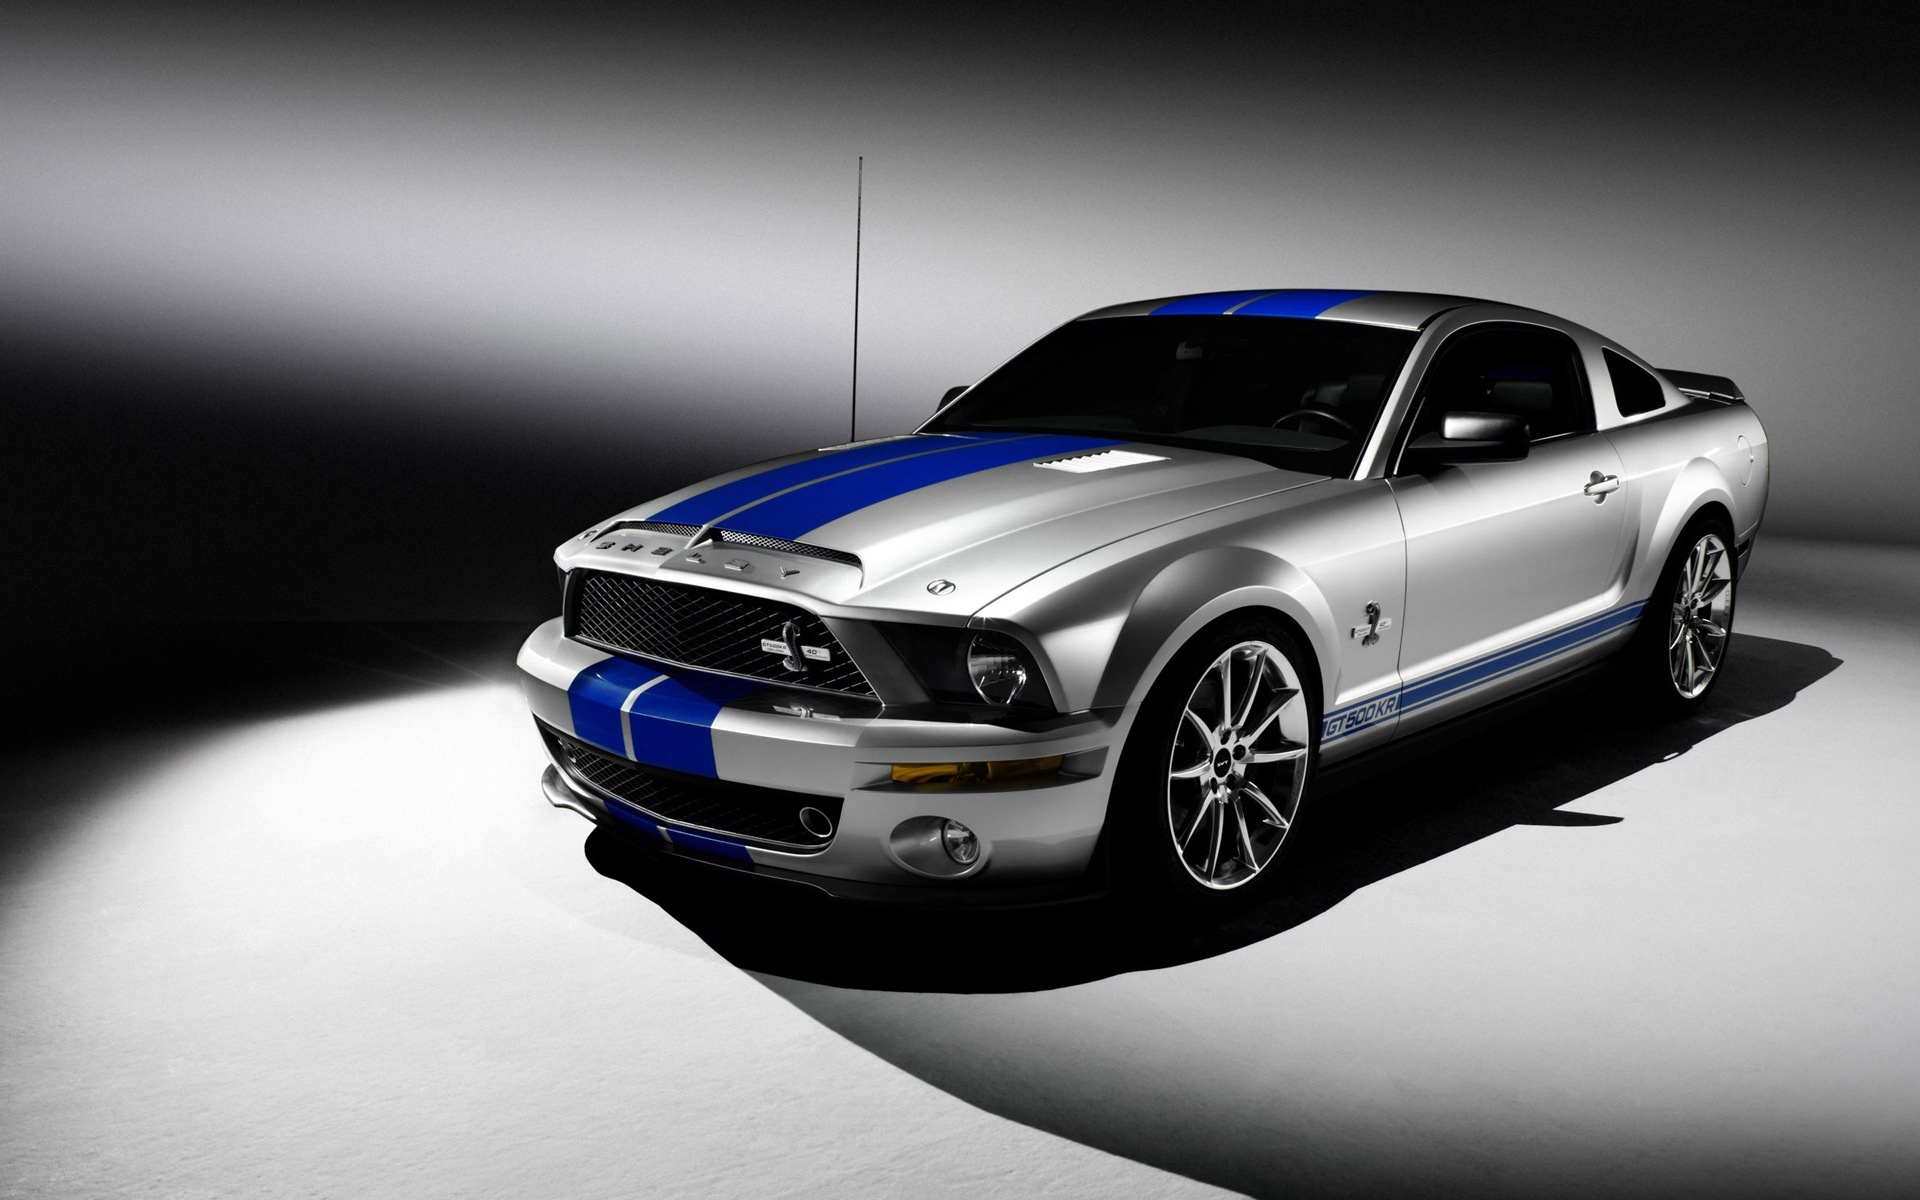 Ford Shelby Mustang GT500 629.65 Kb